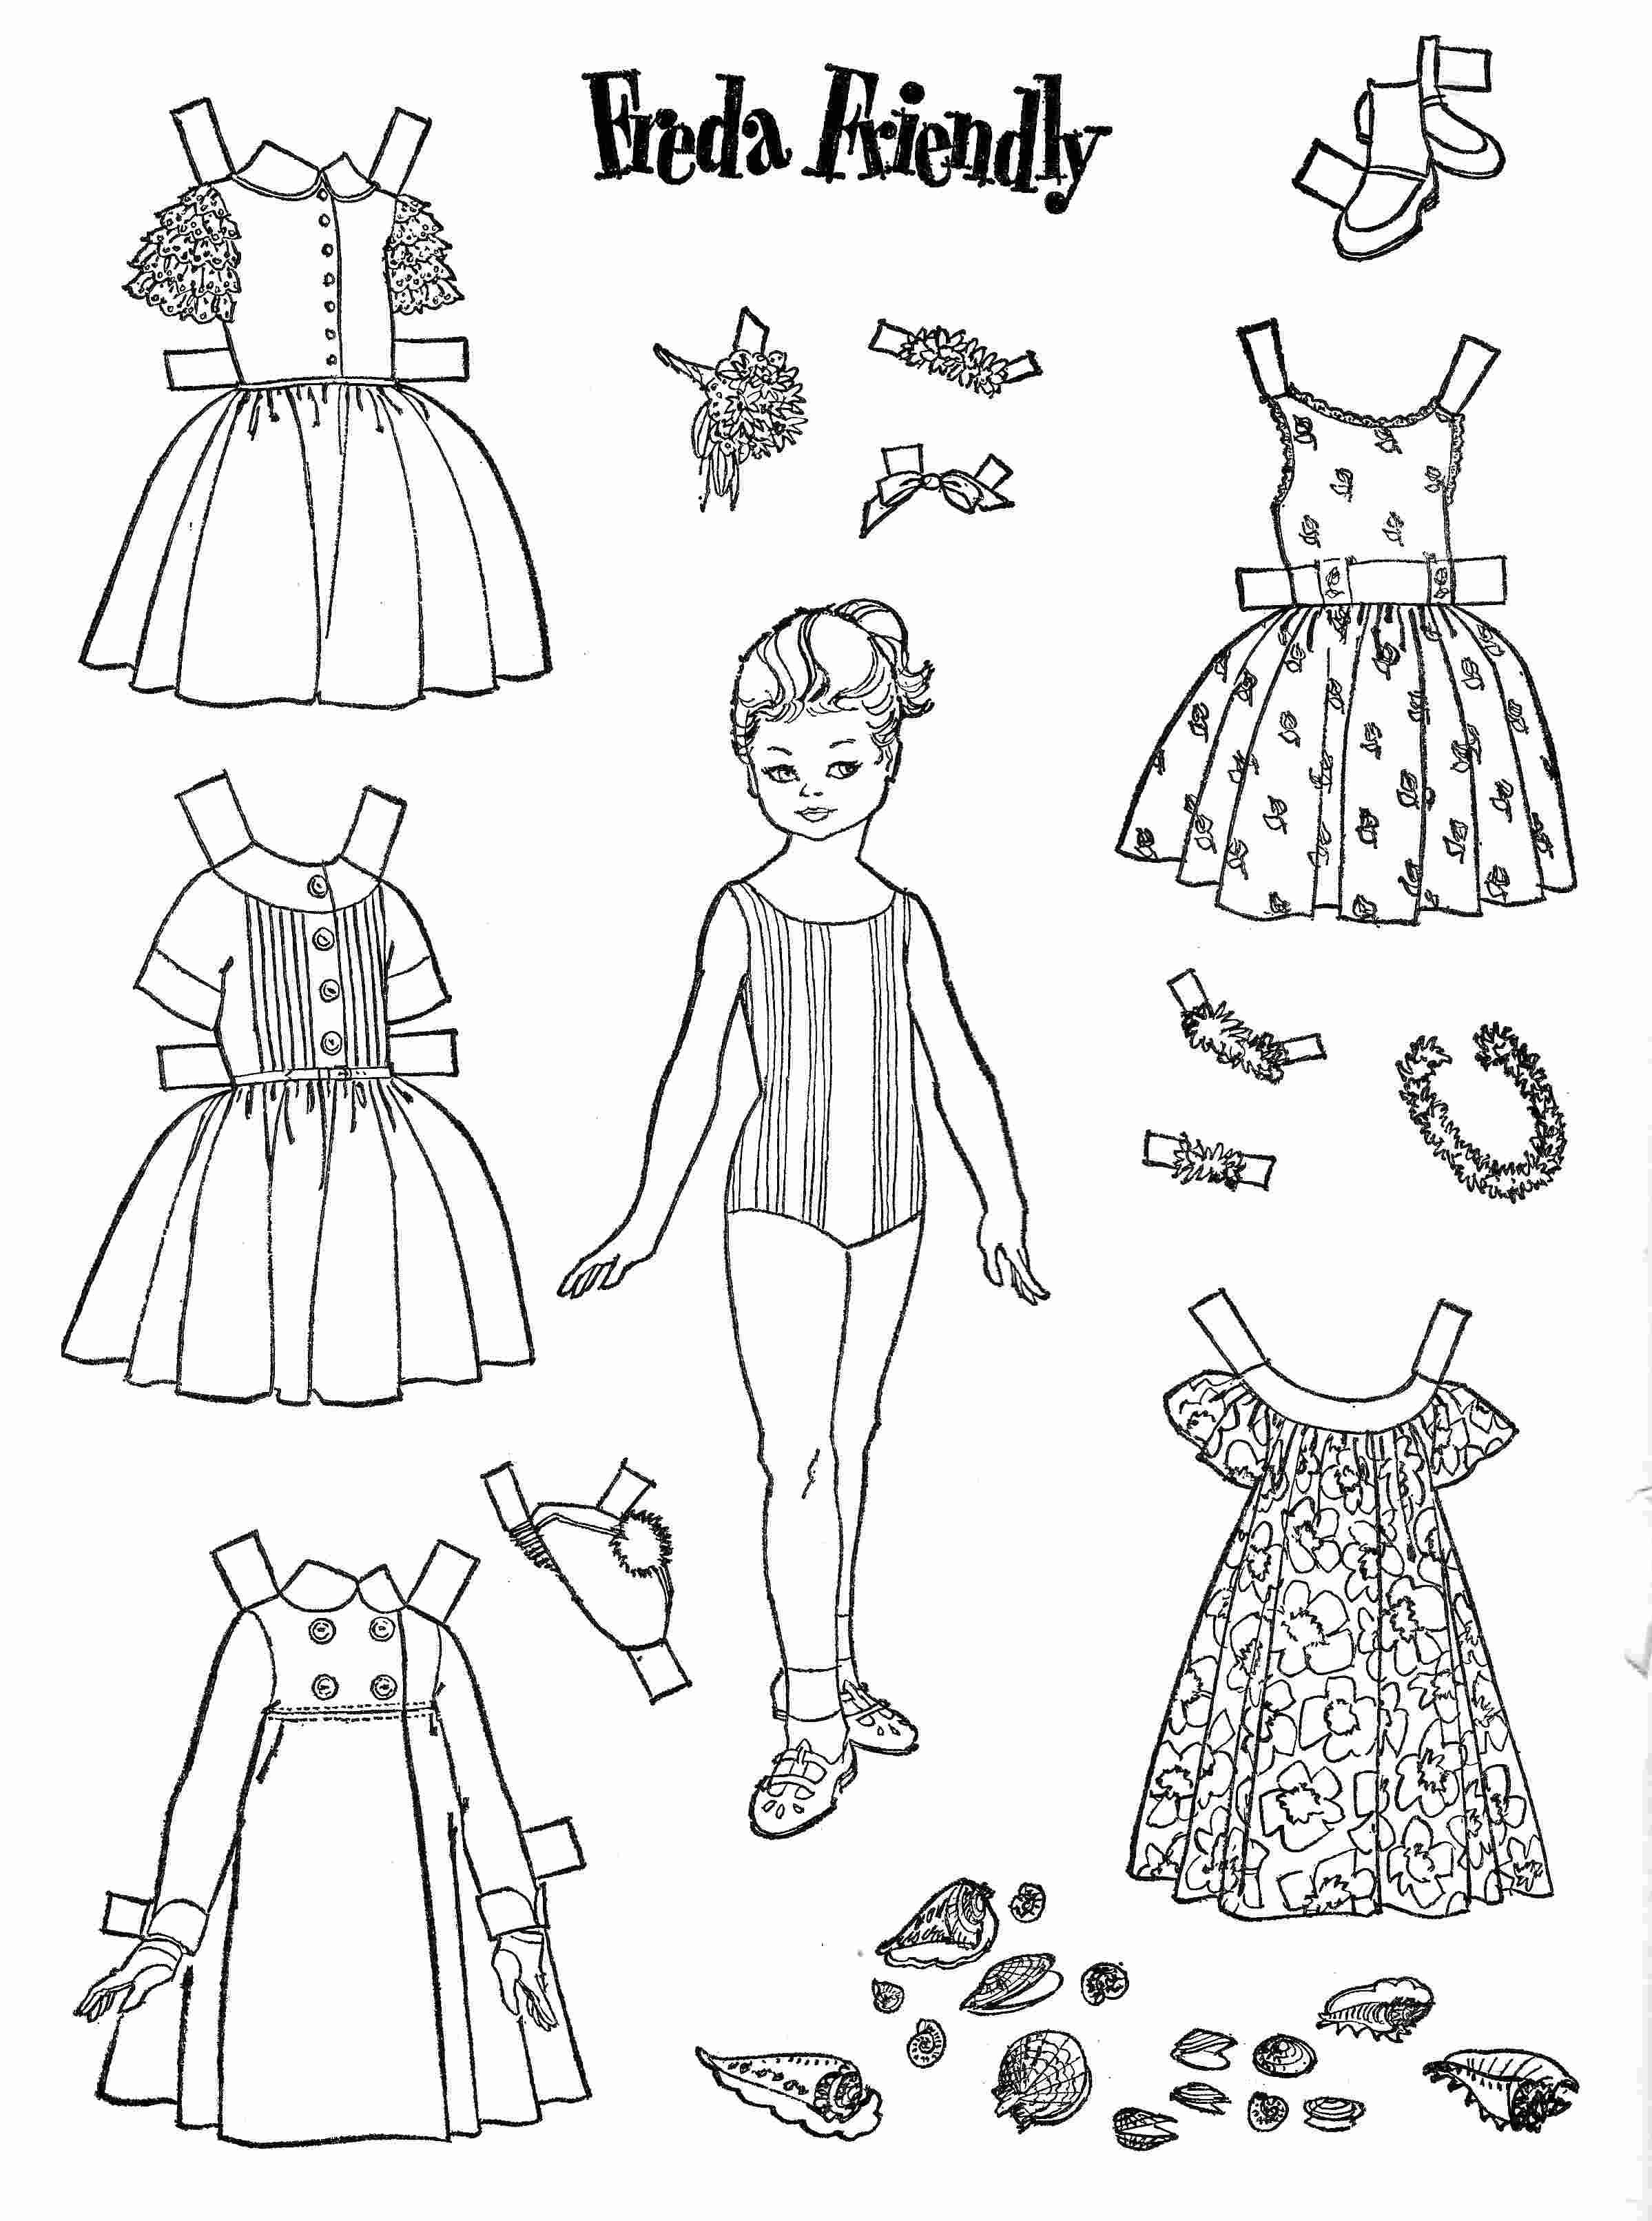 Dress Up Coloring Pages Coloring Pages Paper doll dress up coloring pages New